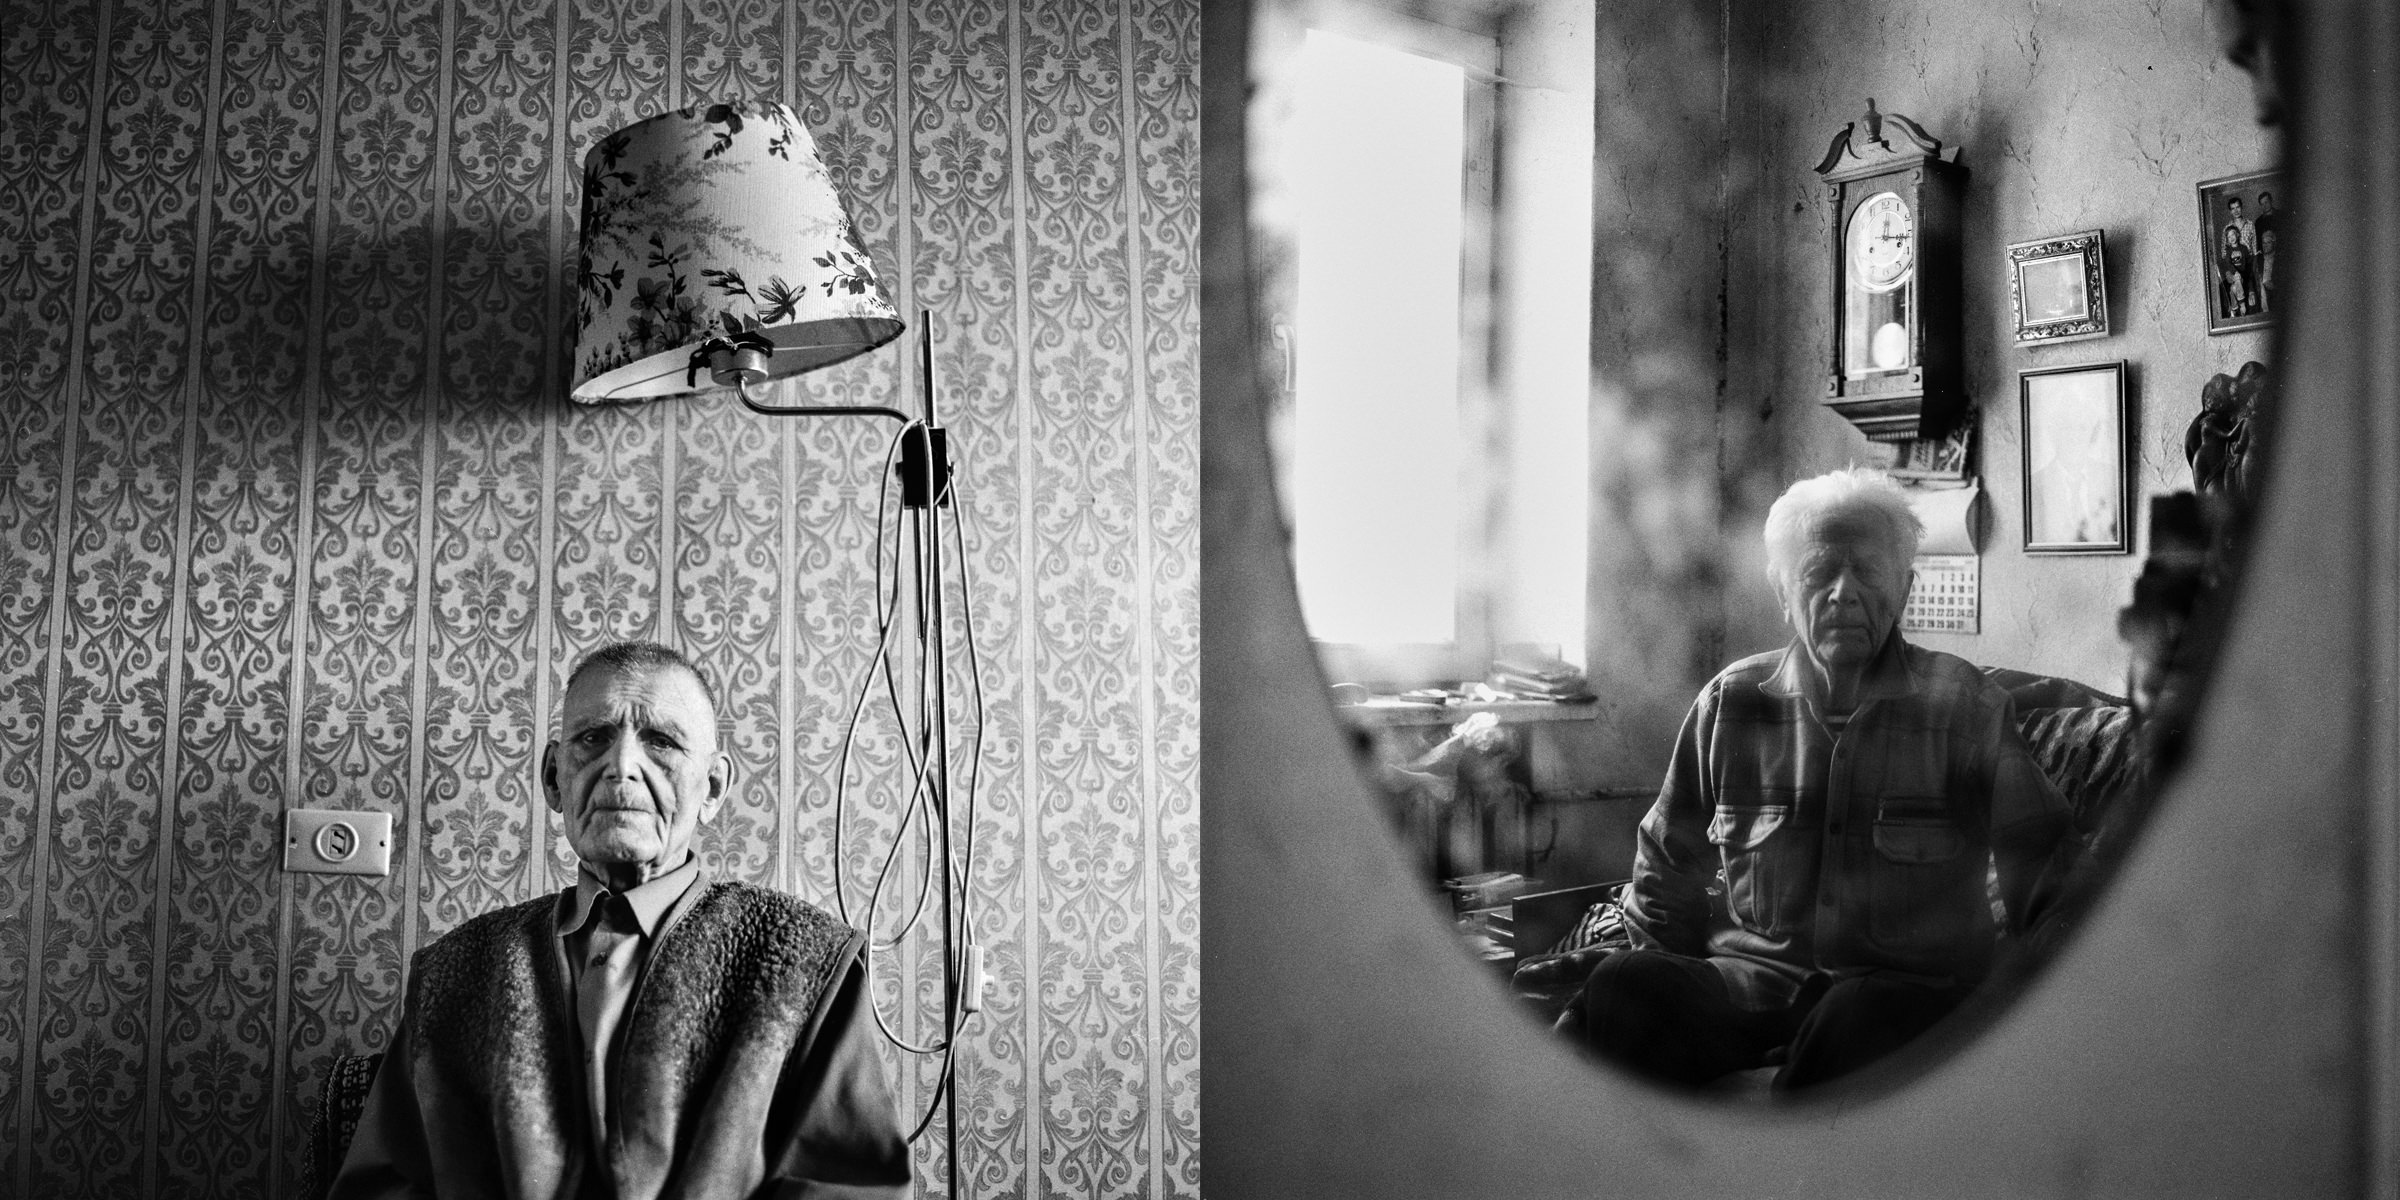 Belarusian veterans portraits of WW 2 sitting in their flats in Minsk, documentary black-and-white photo project